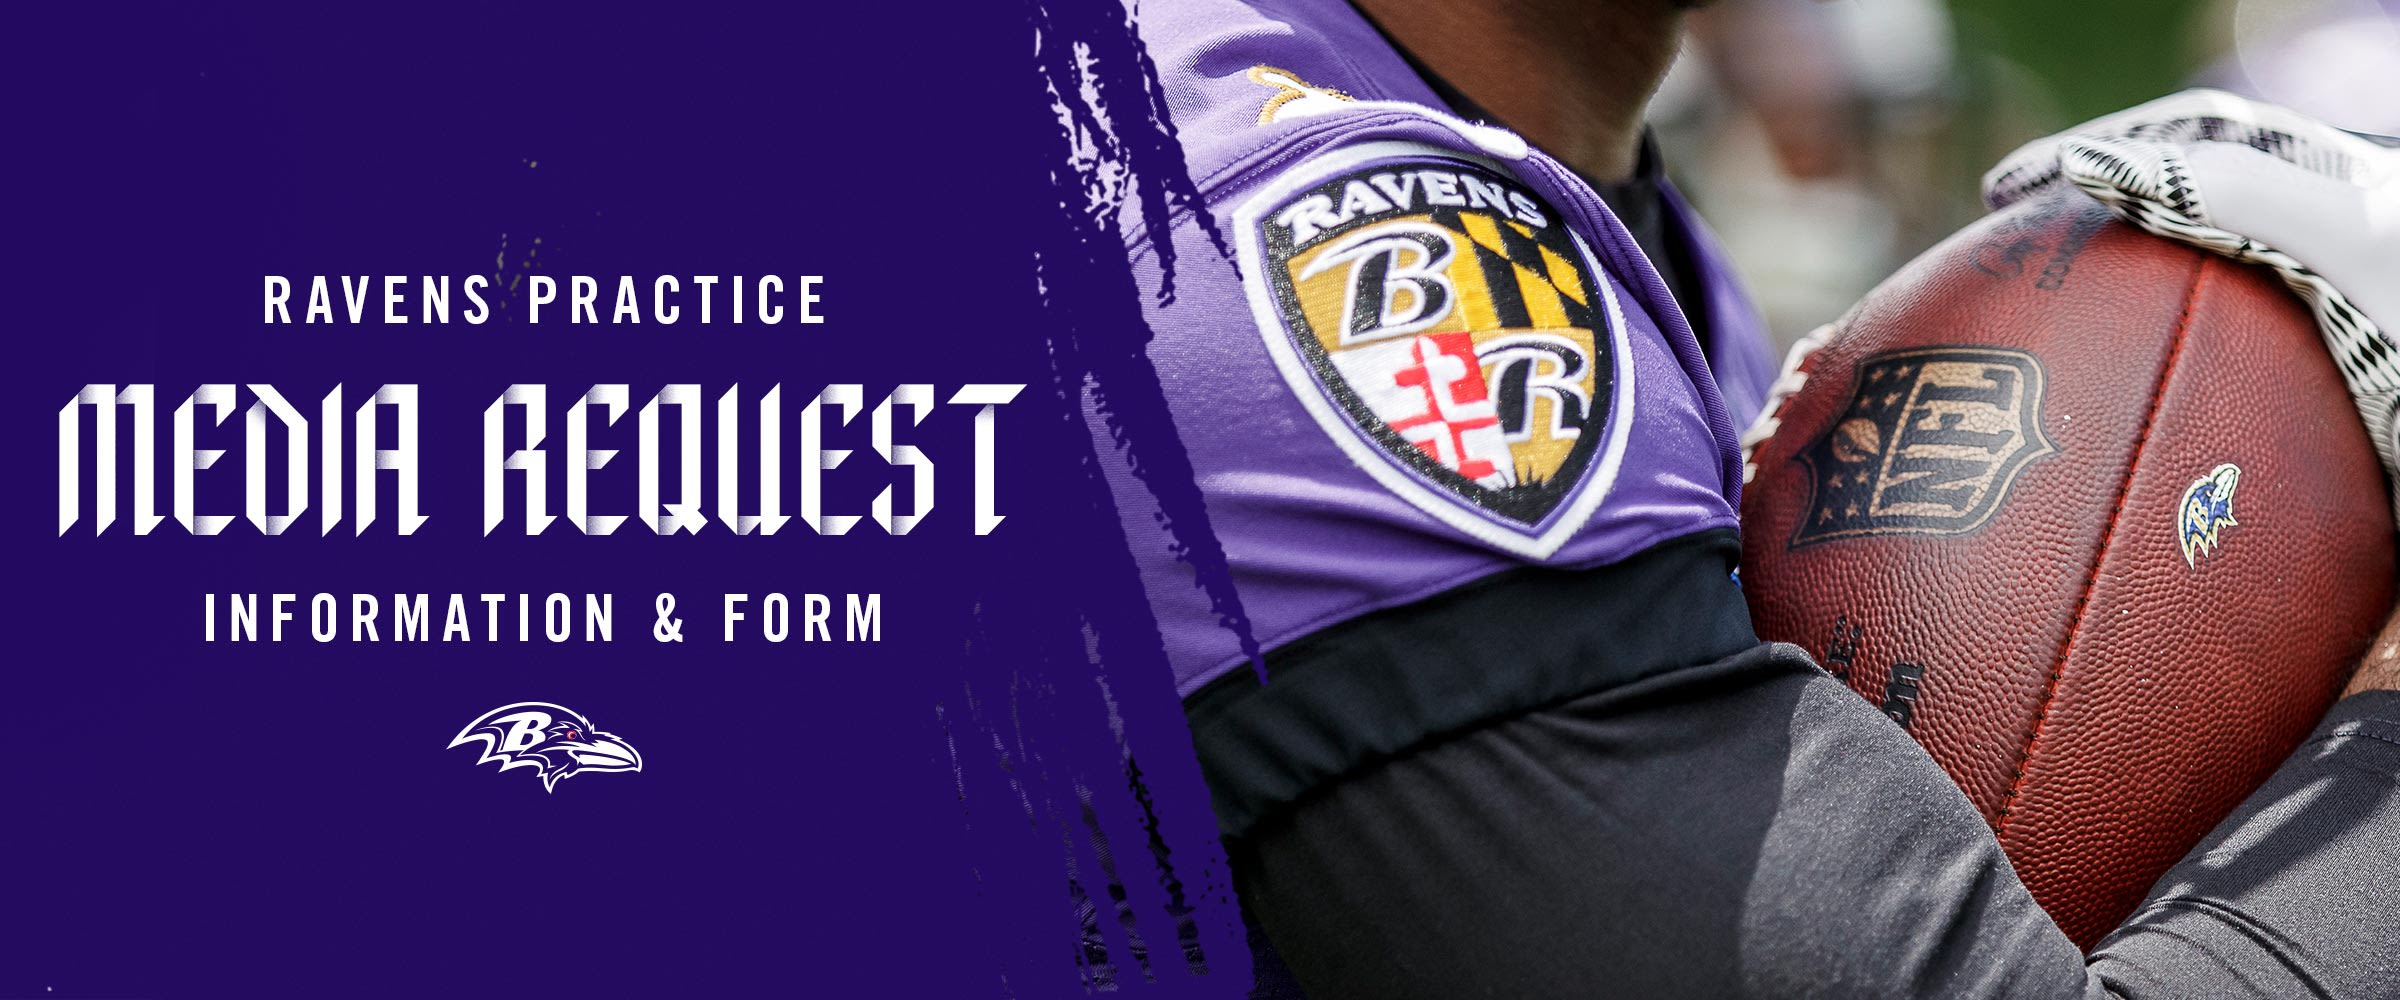 Ravens Practice Media Request information and form